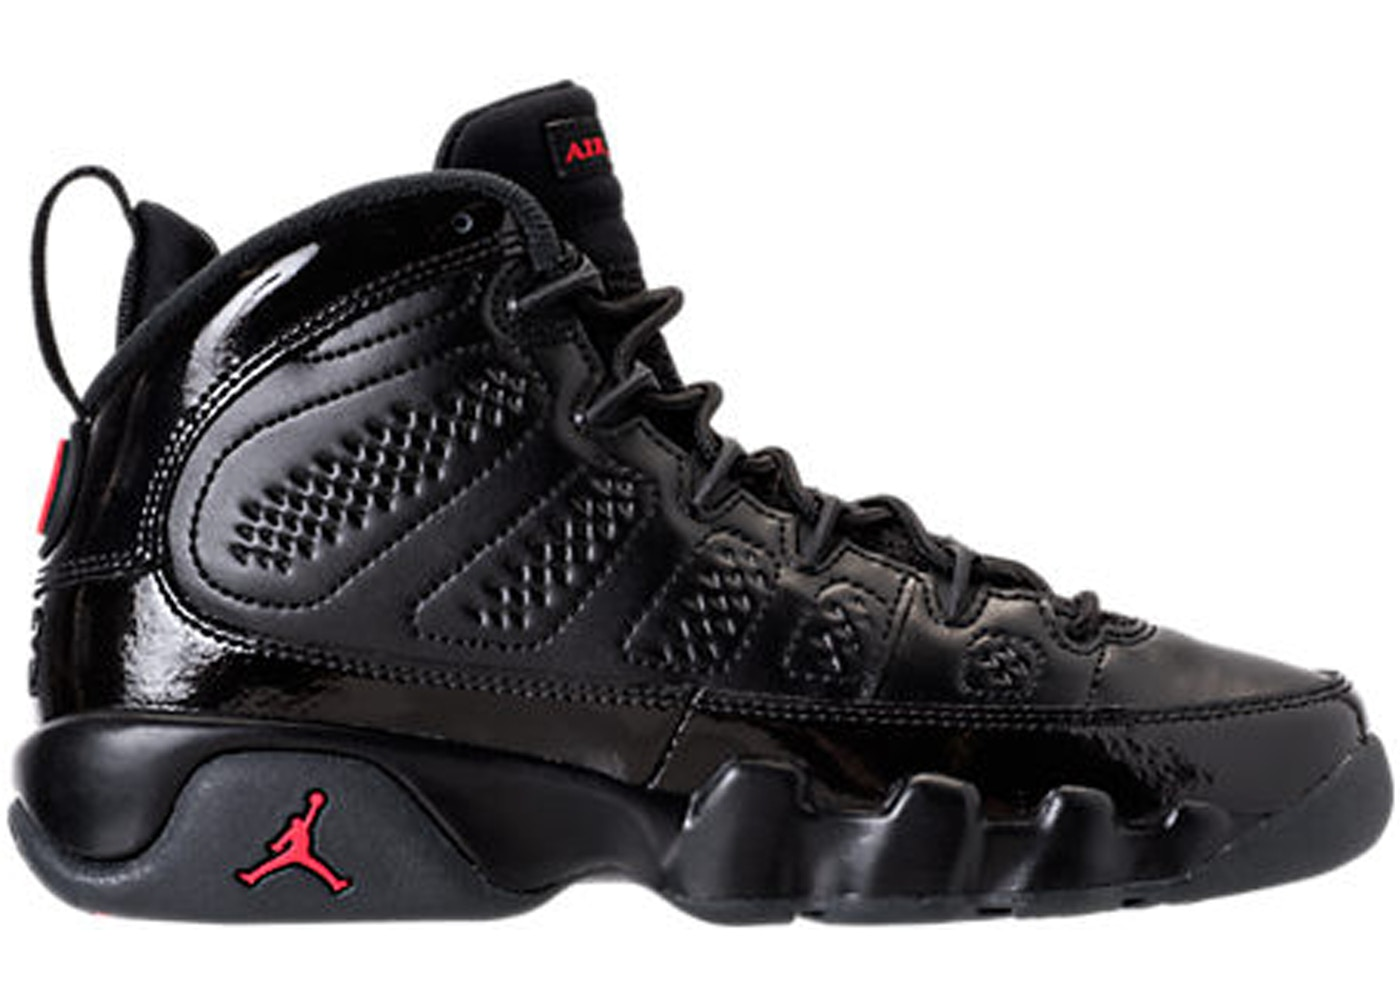 923e8cf567e Sell. or Ask. Size: 7Y. View All Bids. Jordan 9 Retro ...